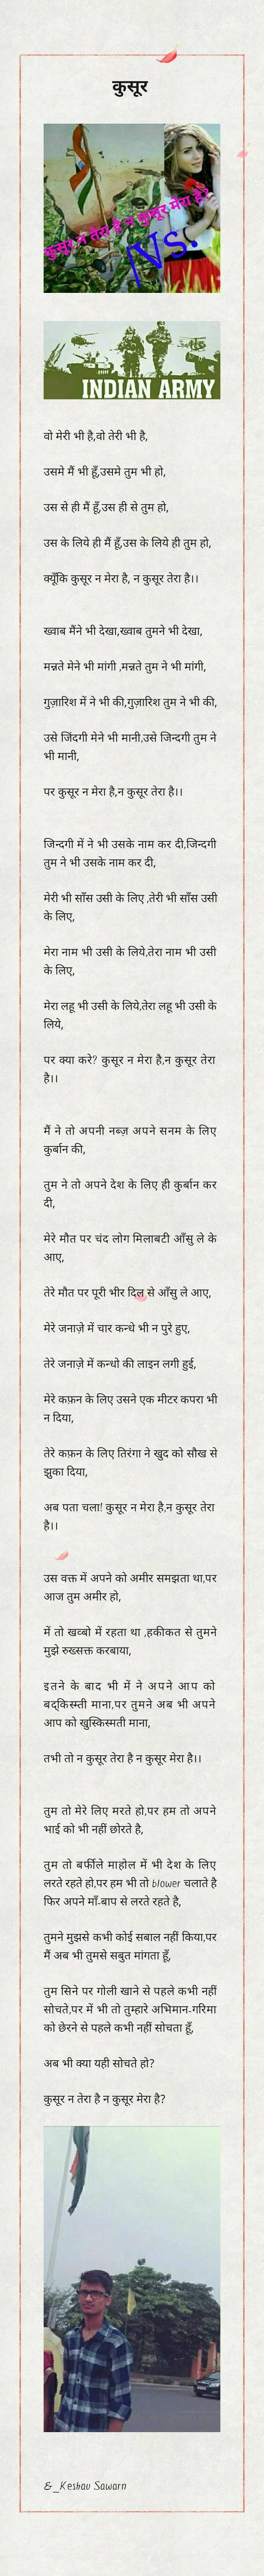 Its a lovely Hindi poem on nationality which describes the literally feelings of a person towards their nation